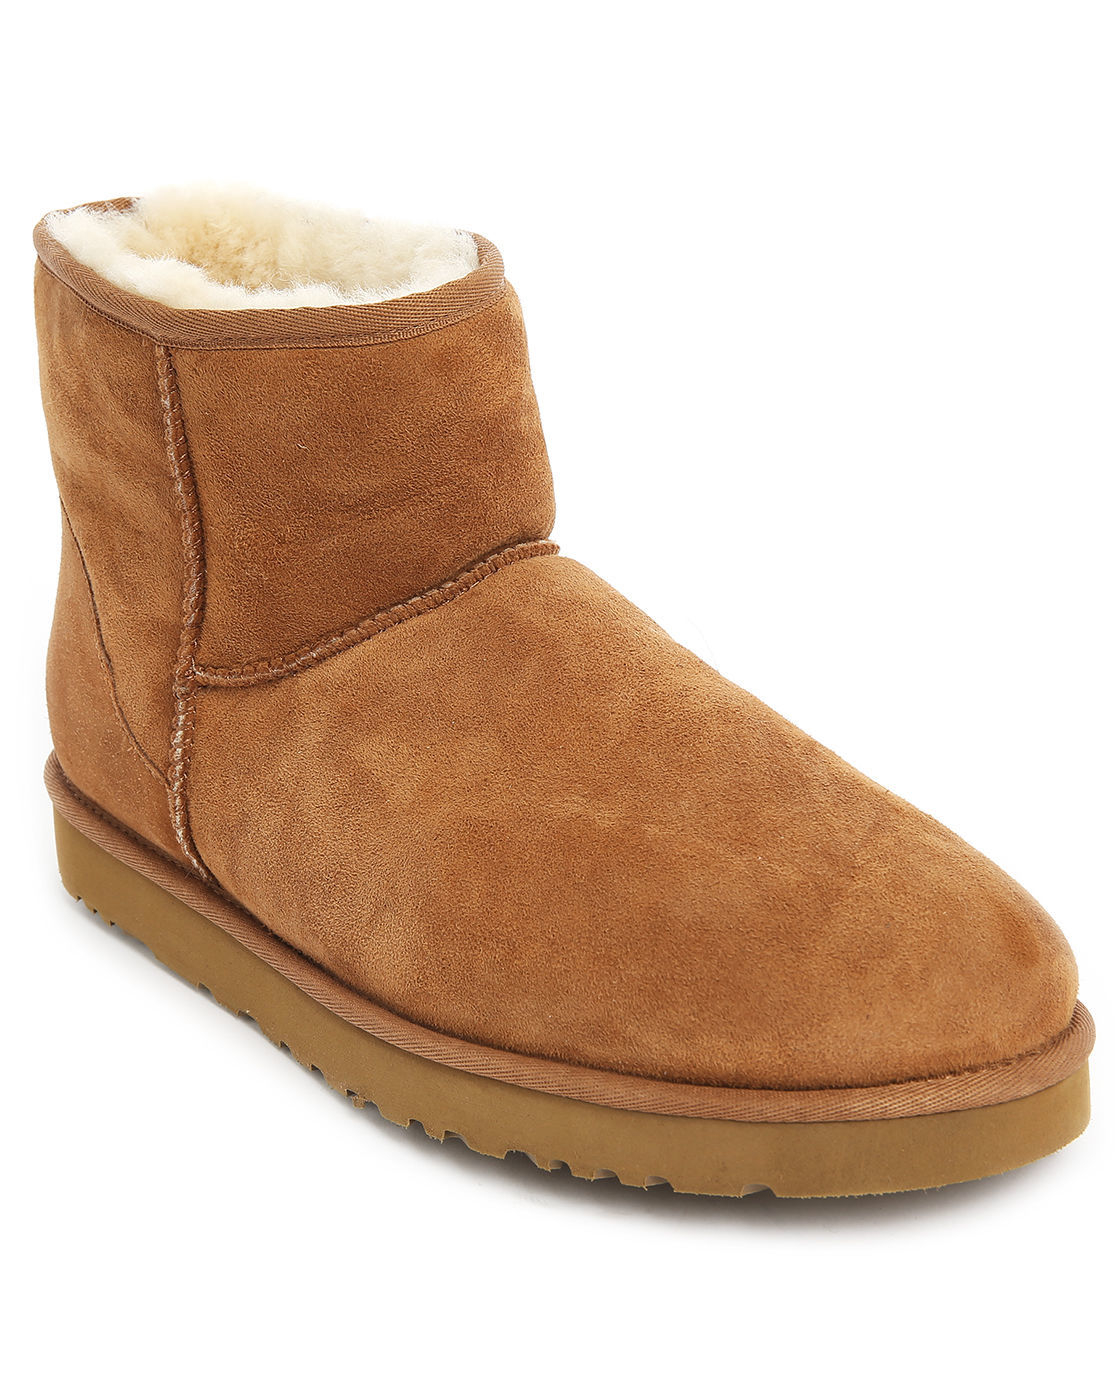 ugg classic mini beige boots in suede m in natural for men. Black Bedroom Furniture Sets. Home Design Ideas